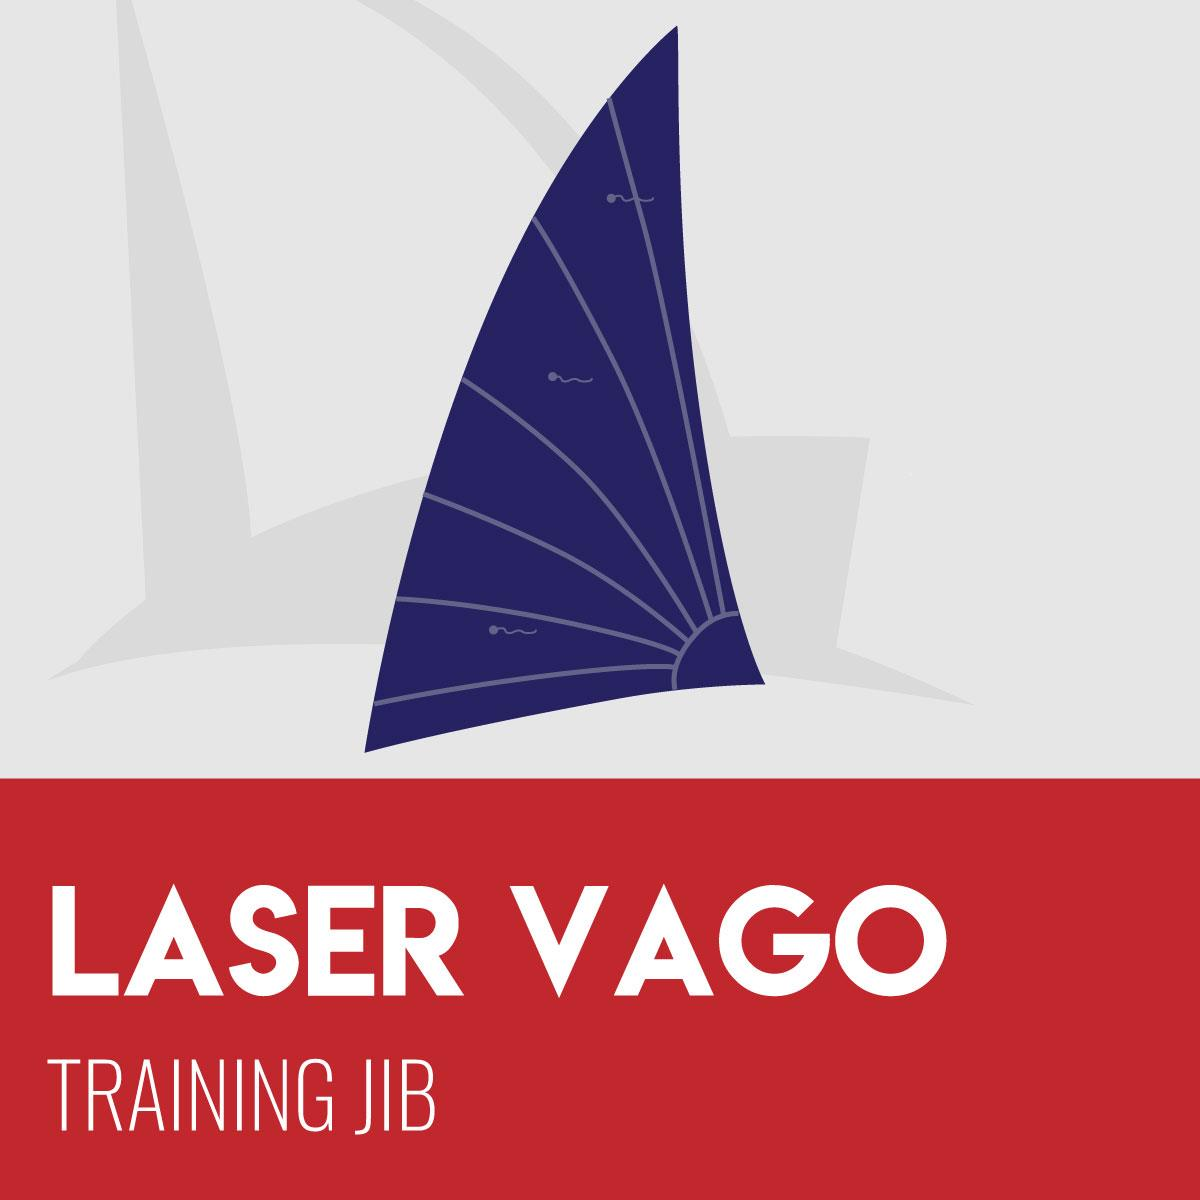 Laser Vago Training Jib